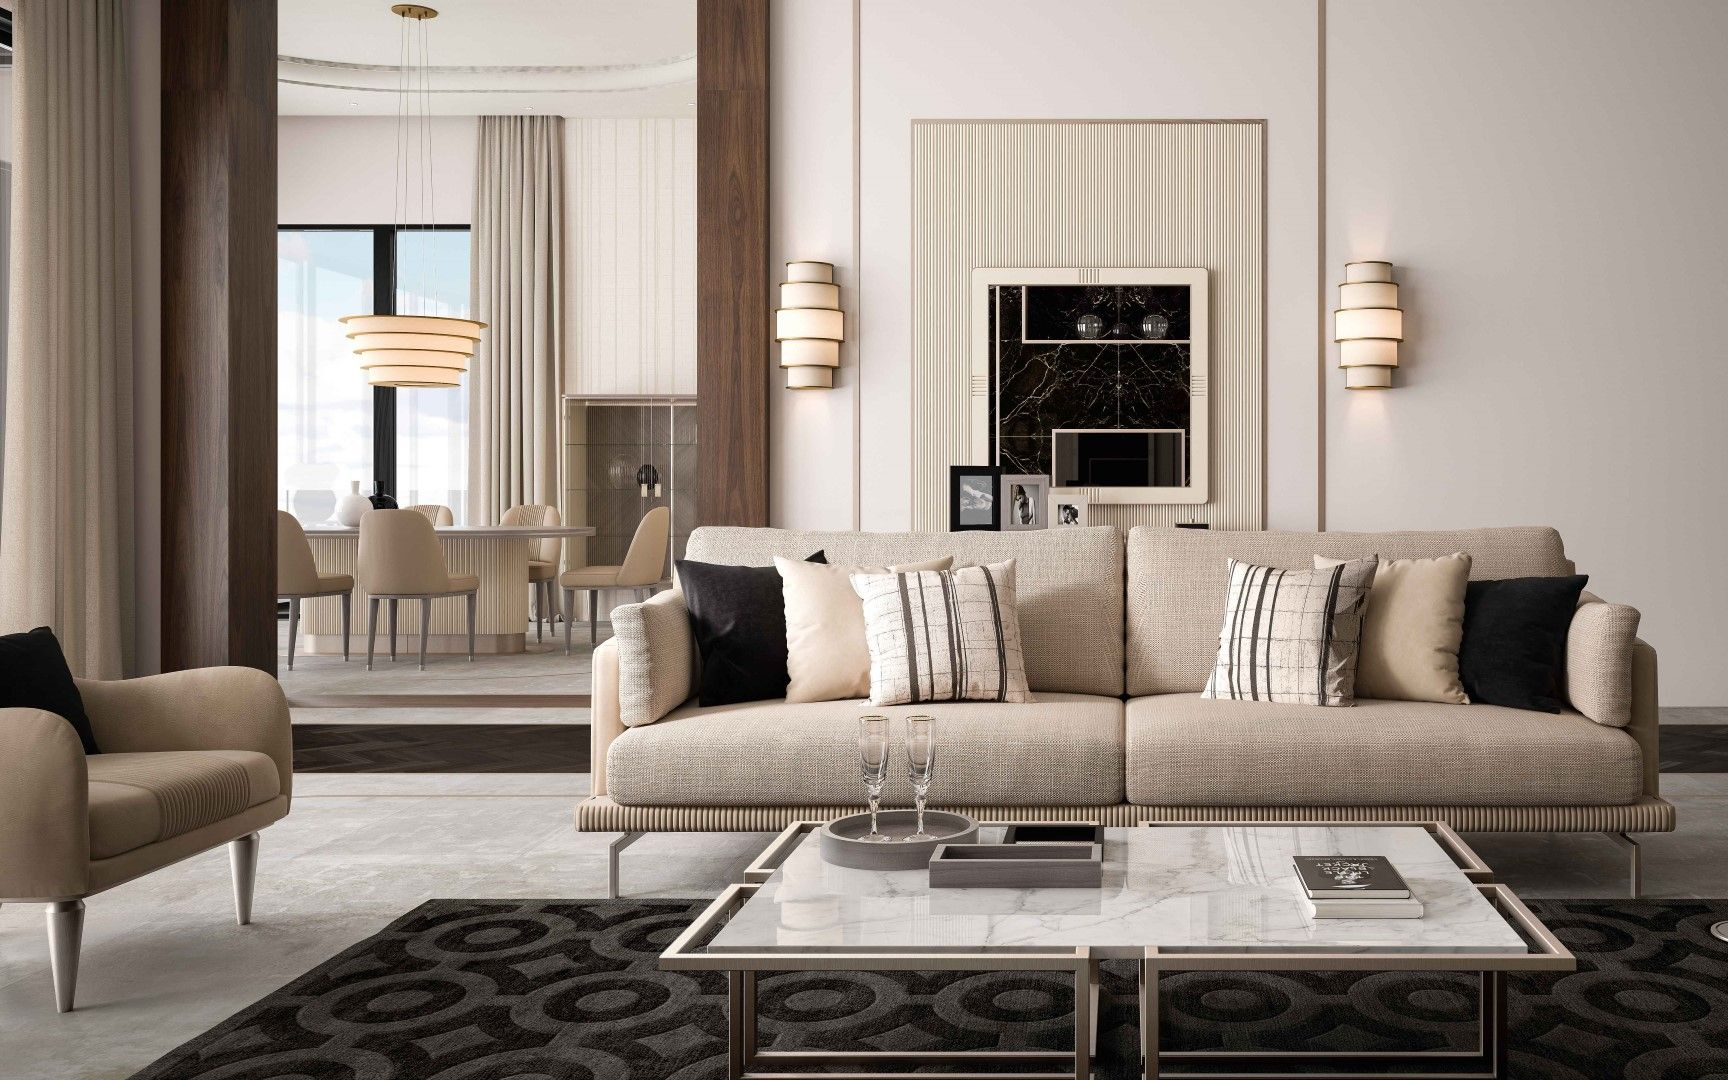 Ottimo Brings Luxury Italian Furniture Brand Cipriani Homood To India The Architects Diary Italian Sofa Designs Italian Furniture Brands Italian Furniture